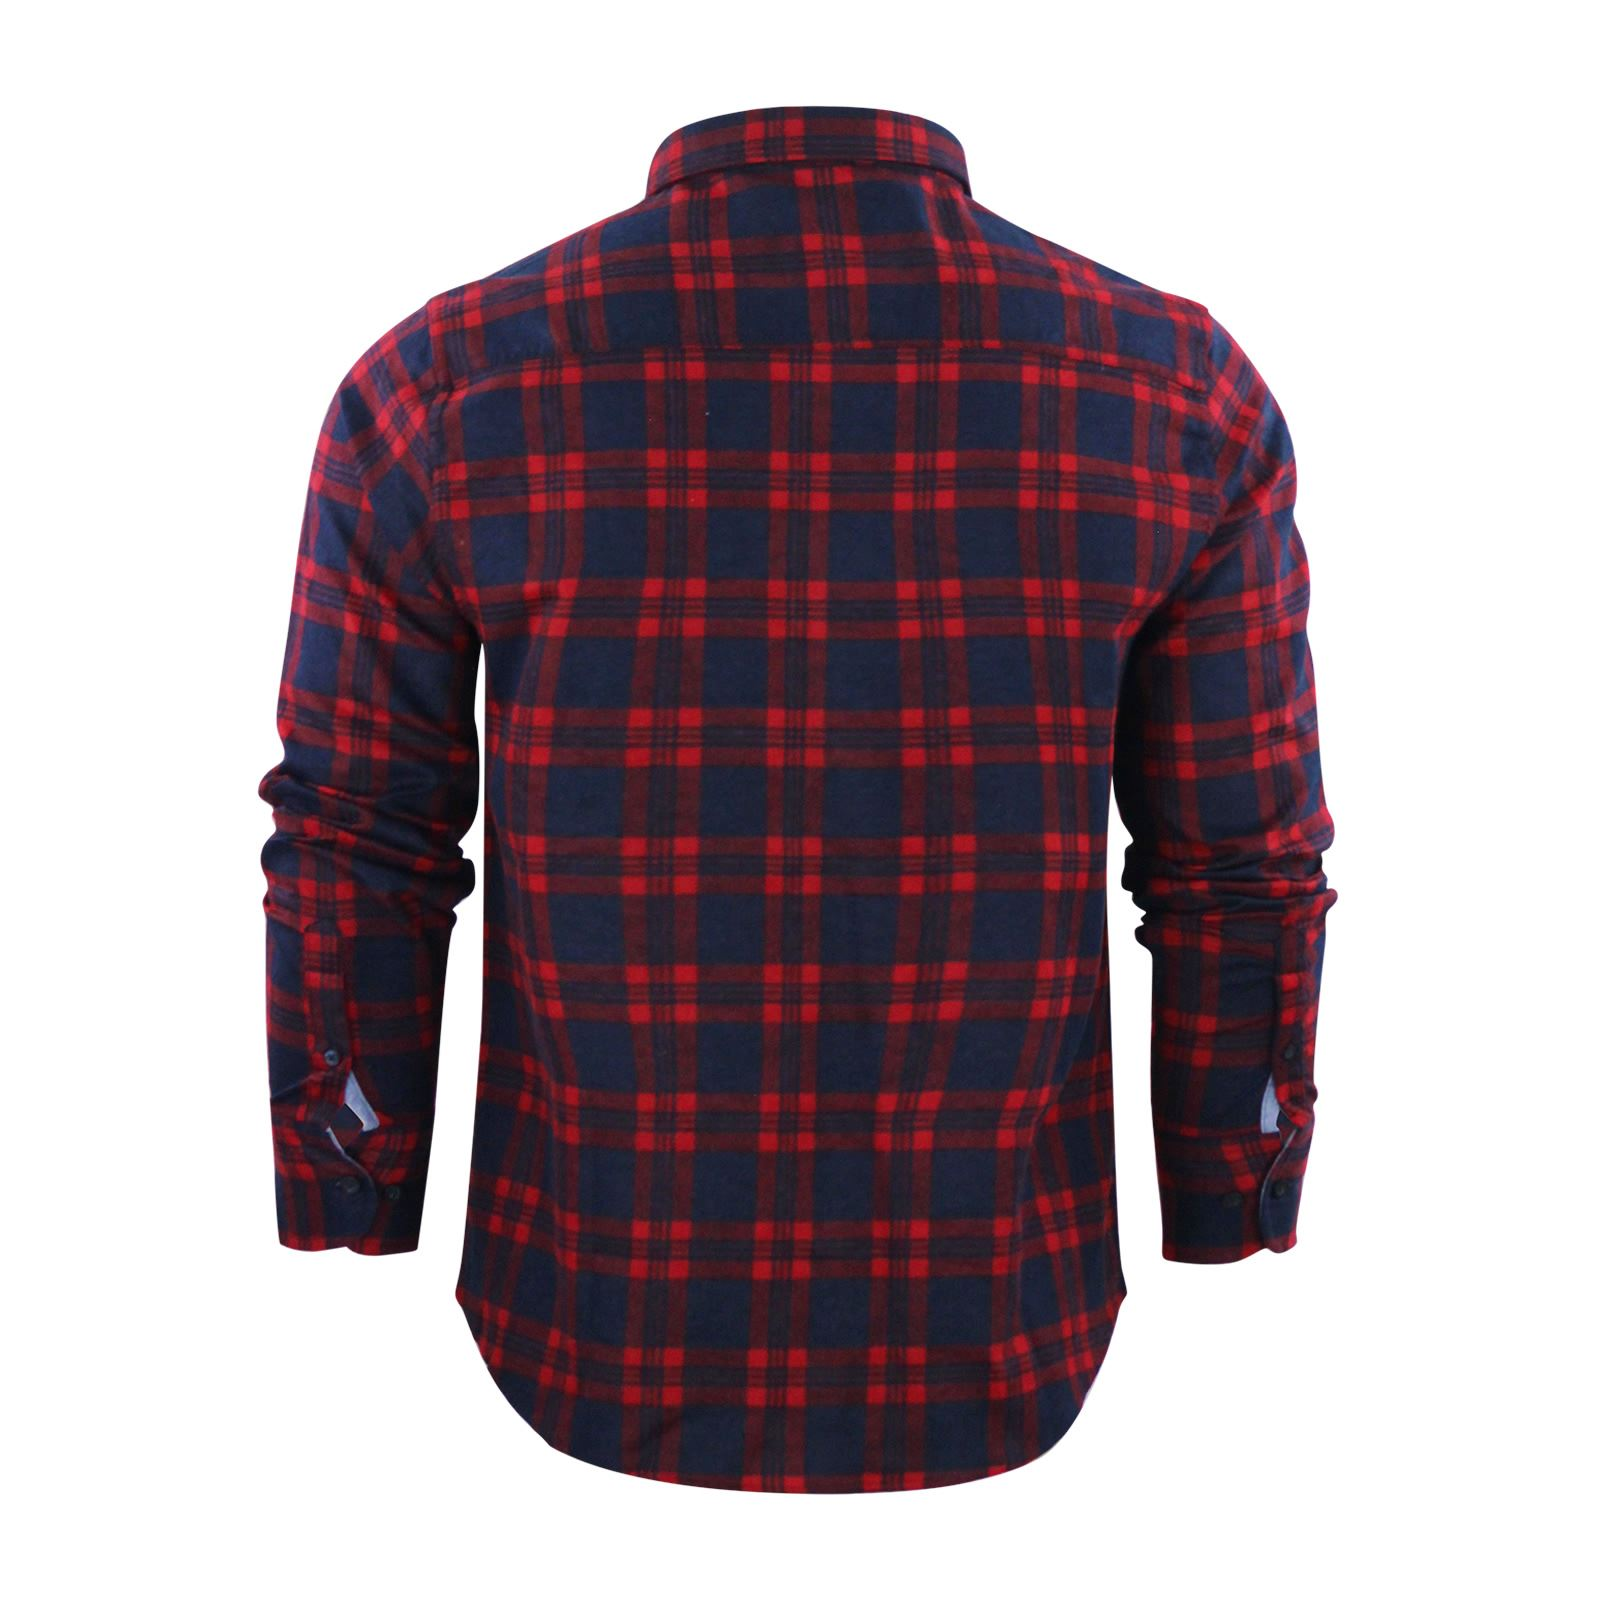 Mens-Check-Shirt-Brave-Soul-Flannel-Brushed-Cotton-Long-Sleeve-Casual-Top thumbnail 78